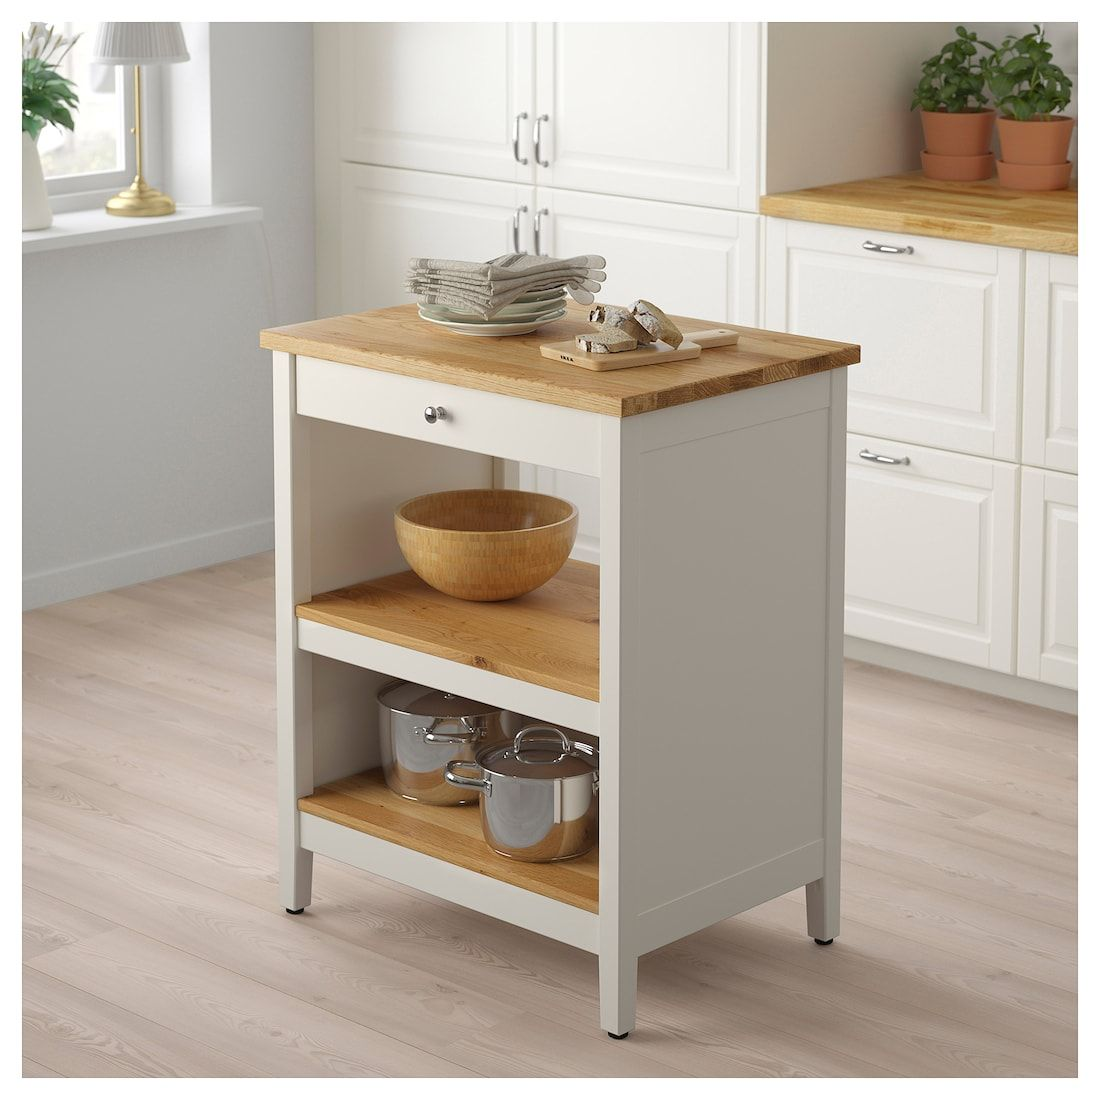 Tornviken Kitchen Island Off White Oak Width 28 3 8 Ikea Freestanding Kitchen Island Grey Kitchen Island Ikea Kitchen Island